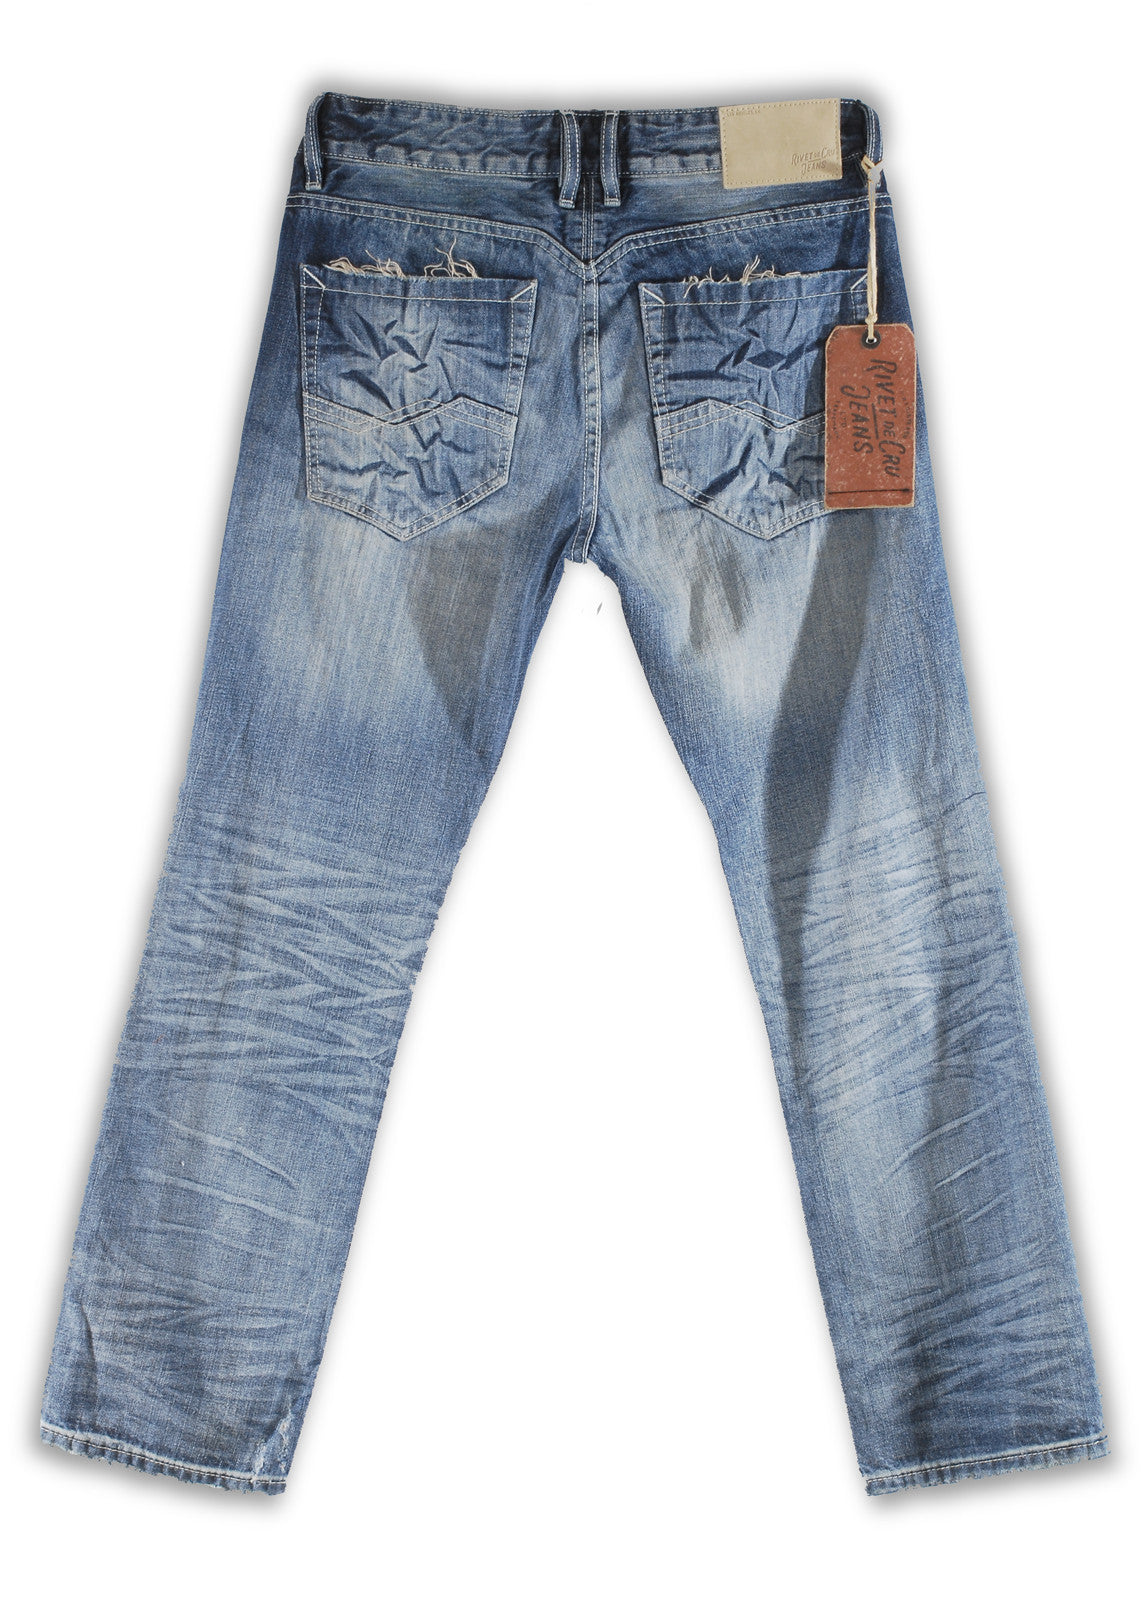 162-029M Sandblast Blue Jeans - Rivet De Cru Jeans - Premium Denim - Mens Fashion - Mens Clothing - Mens Jeans - Mens Denim - 2